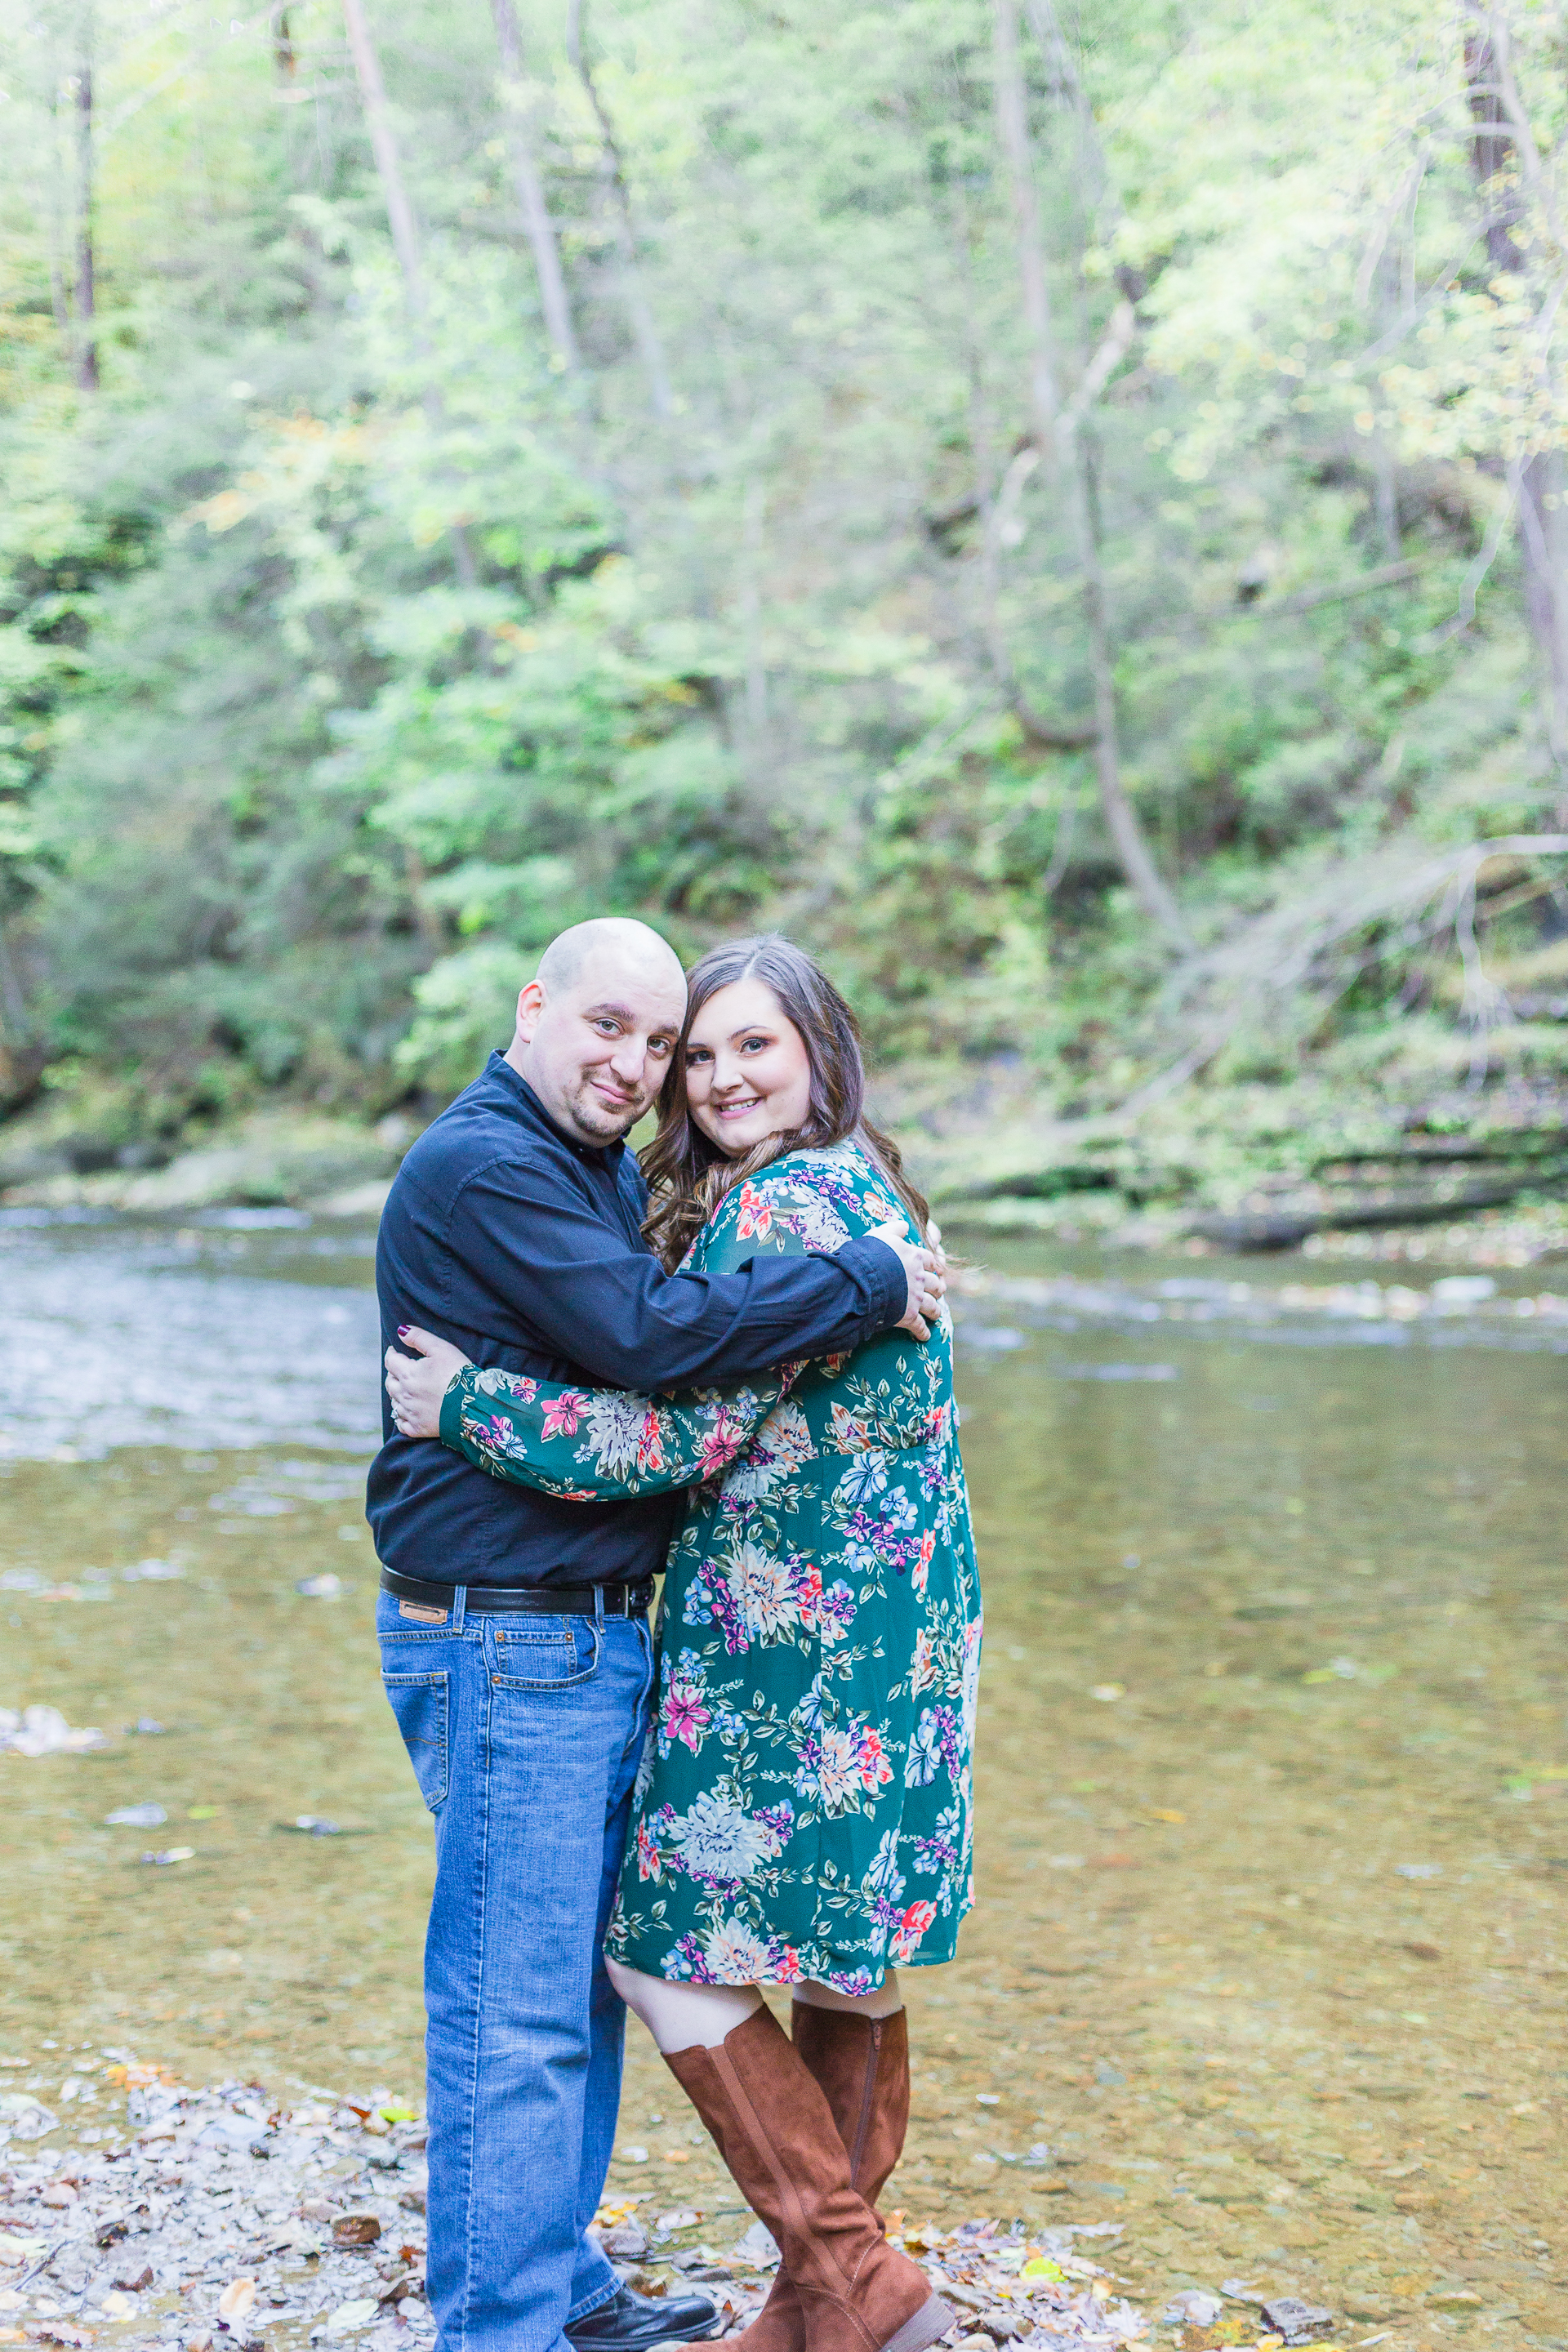 Jacobsburg State Park Nazareth Pennsylvania Woodsy Fall Engagement Session wedding and lifestyle photographer Lytle Photo Co (37 of 64).jpg